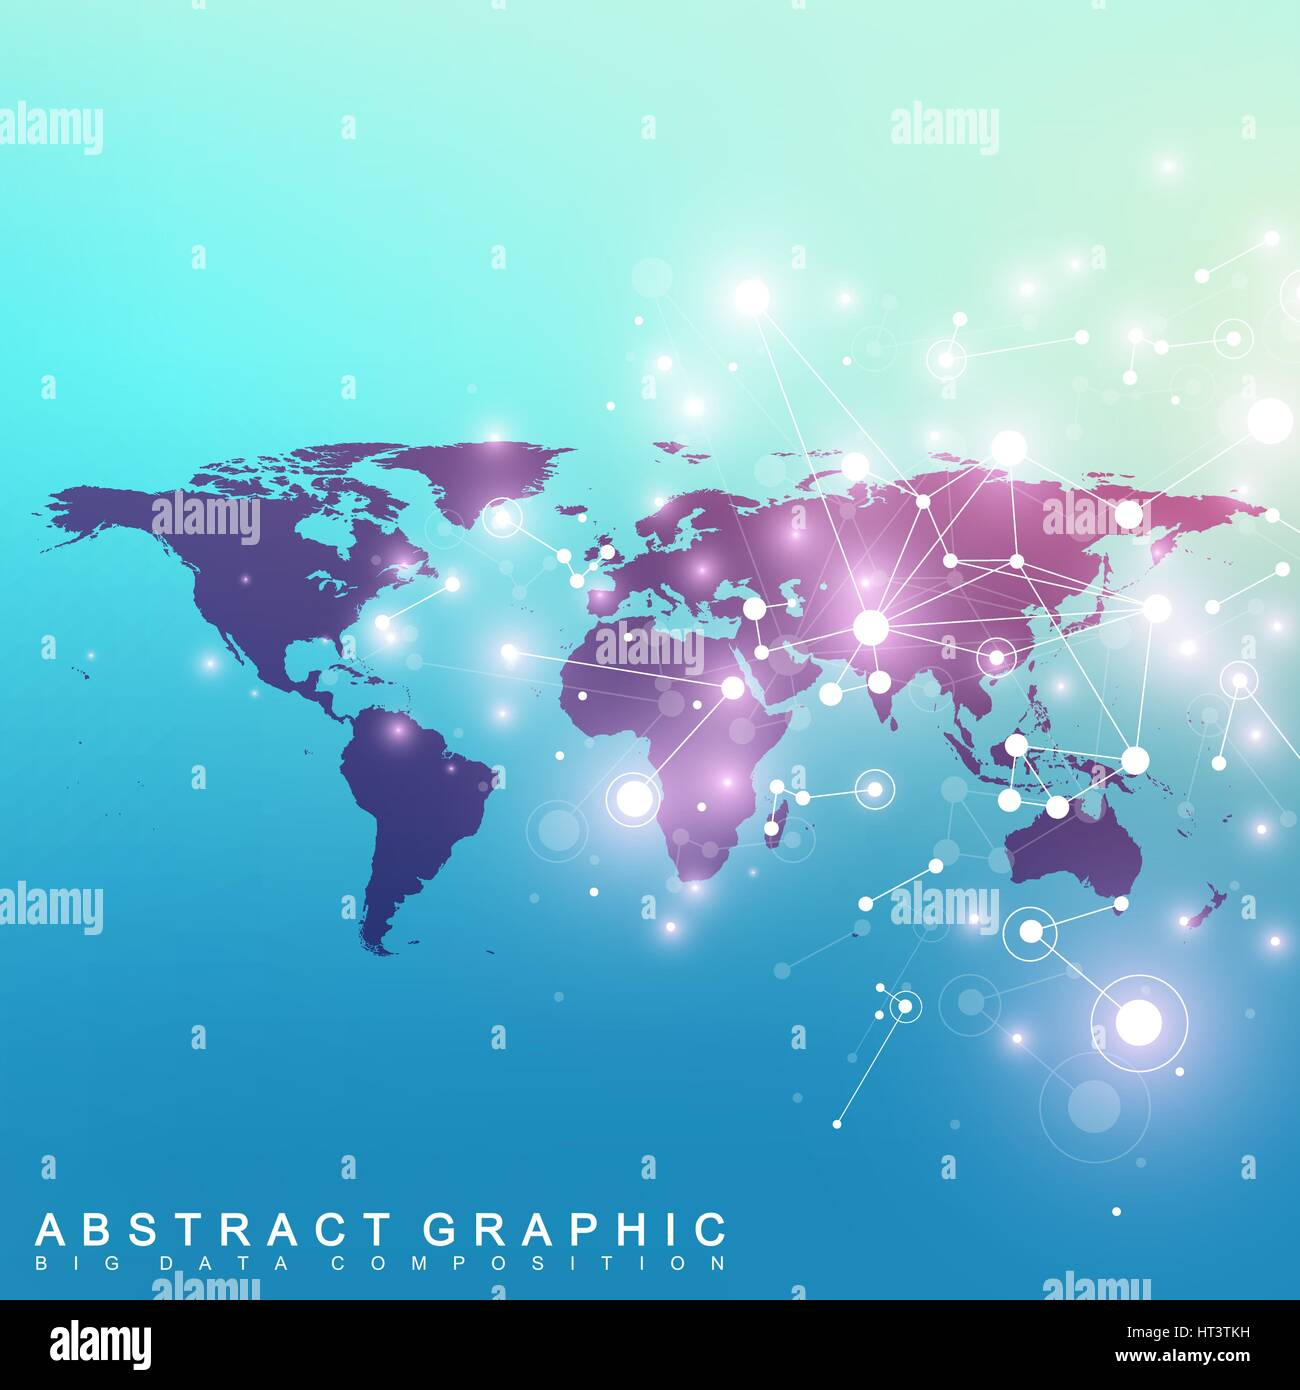 Political world map with global technology networking concept stock political world map with global technology networking concept digital data visualization scientific cybernetic particle compounds gumiabroncs Choice Image